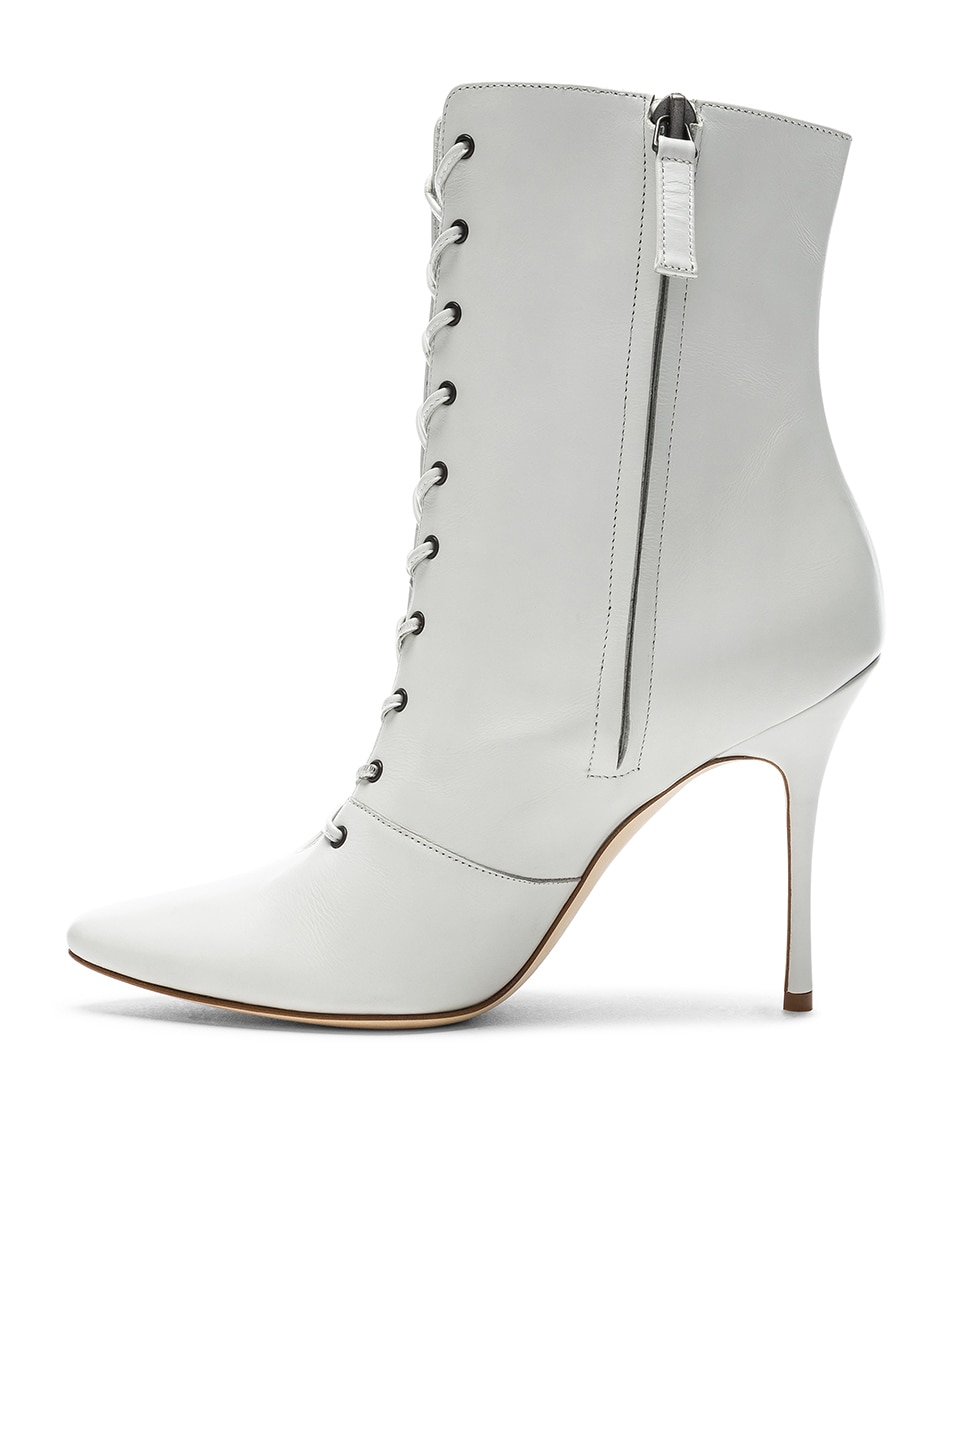 Image 5 of Manolo Blahnik Leather Bordin Booties in White